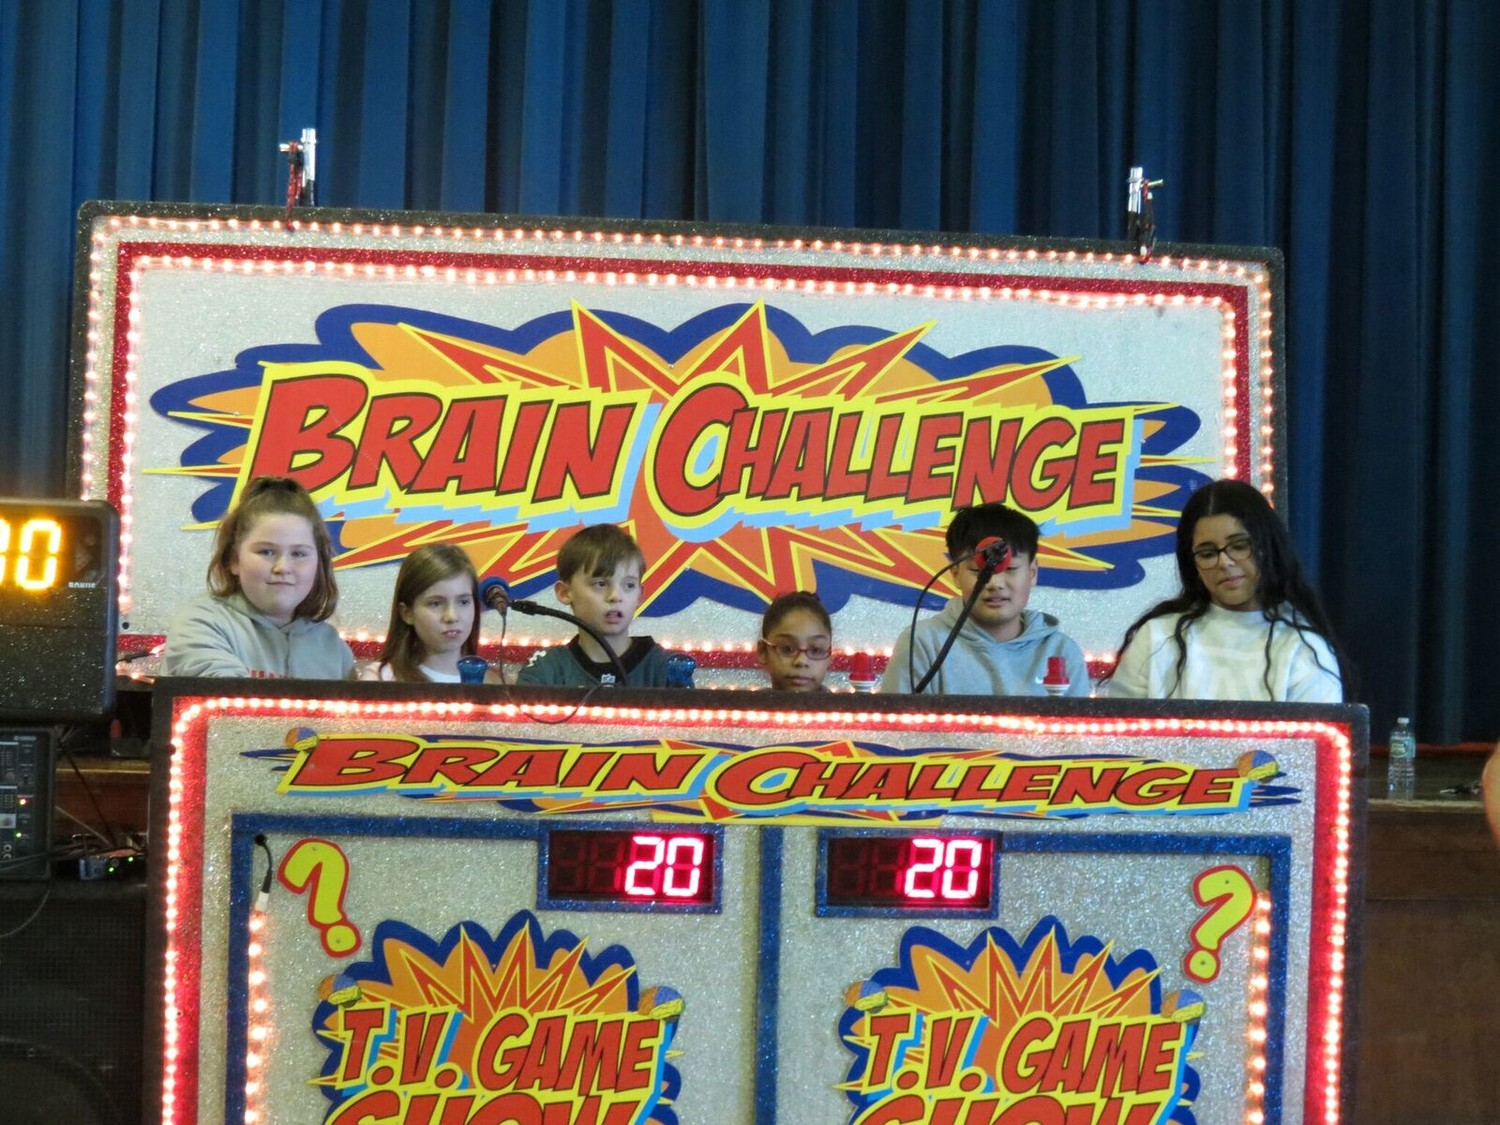 Students at Our Lady of Peace partook in a trivia game show for Catholic Schools Week.